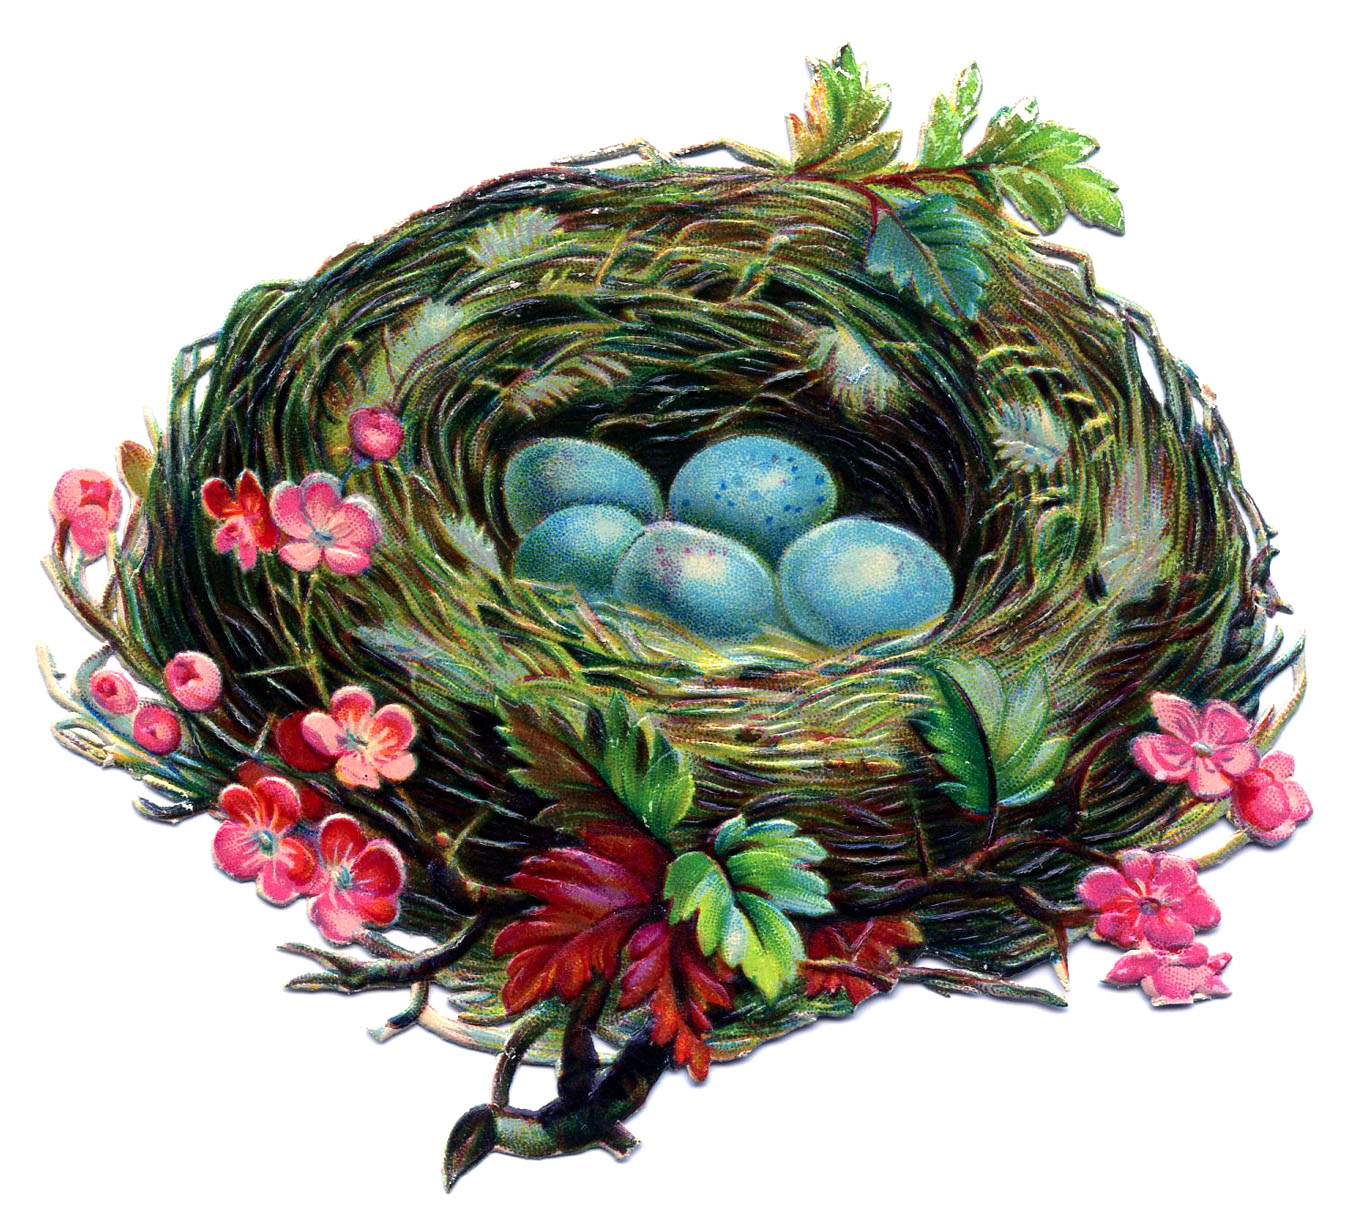 Vintage Clip Art - Pretty Nest with Blue Eggs - The Graphics Fairy